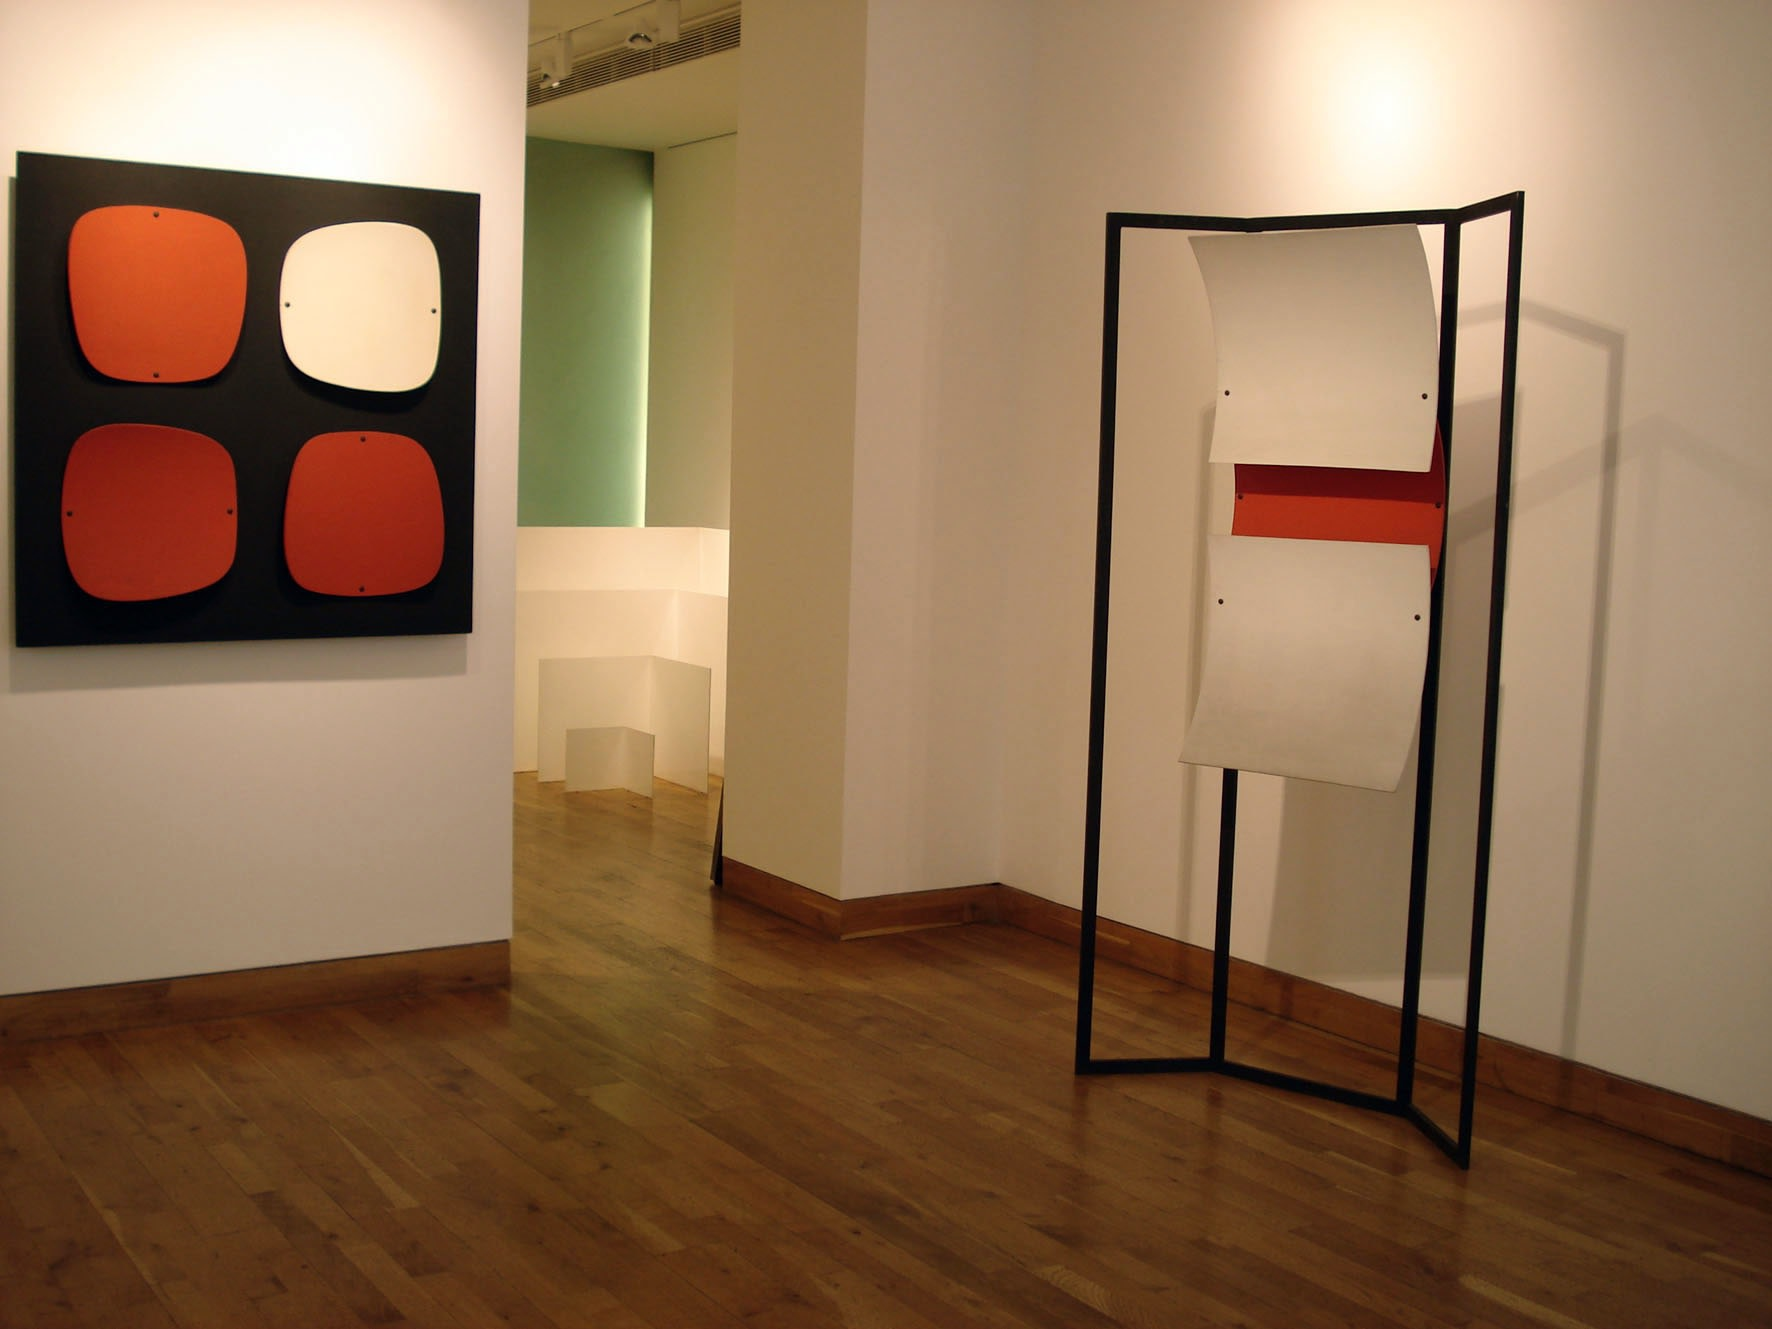 """<span class=""""link fancybox-details-link""""><a href=""""/exhibitions/105/works/image_standalone417/"""">View Detail Page</a></span><p>NICOLA CARRINO 